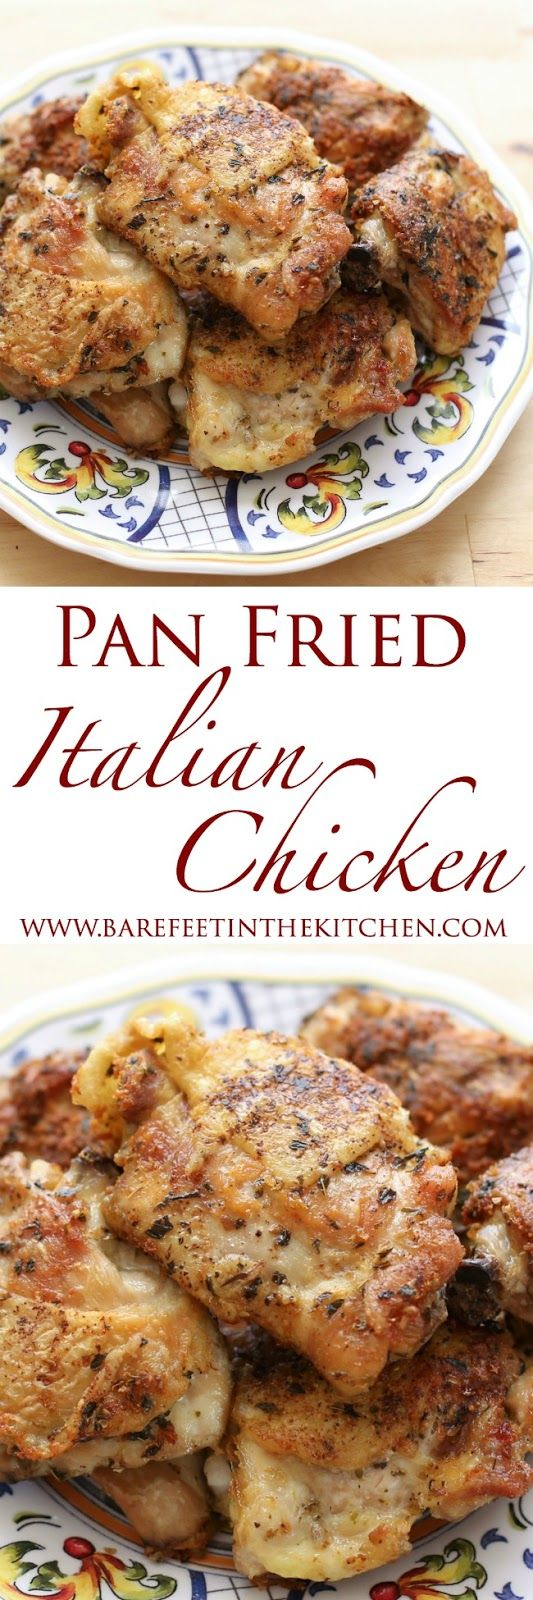 Barefeet In The Kitchen: Pan Fried Italian Chicken Thighs                                                                                                                                                     More